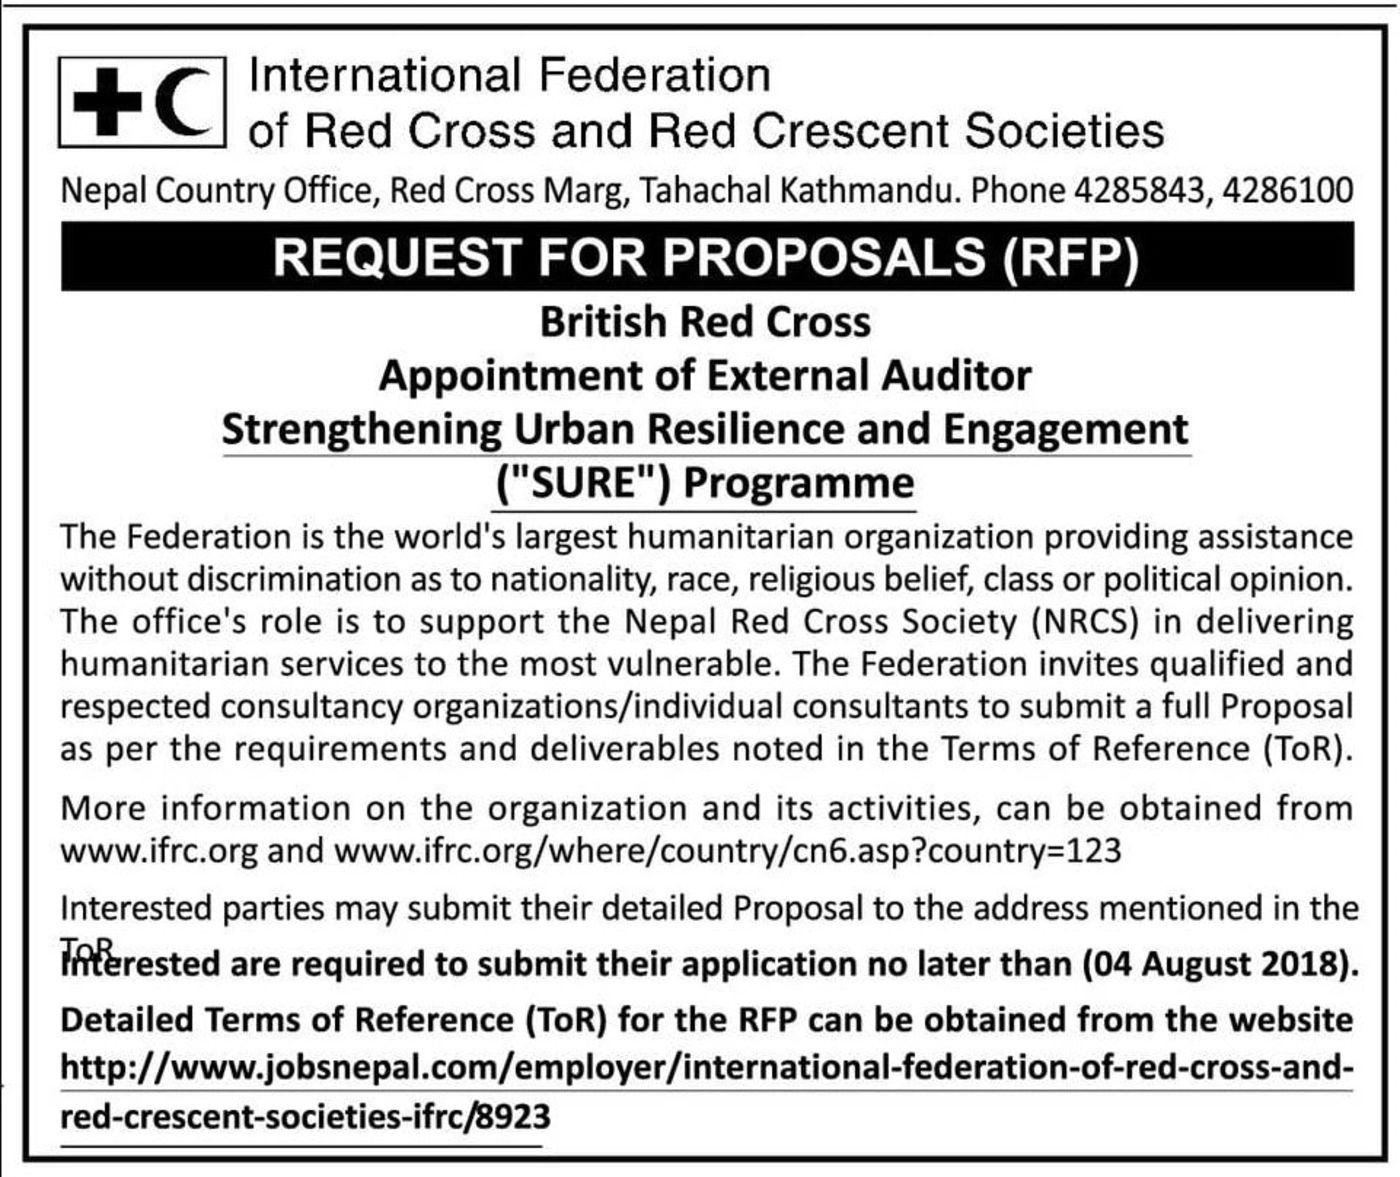 Bids and Tenders Nepal - RFP - British Red Cross - Appointment of